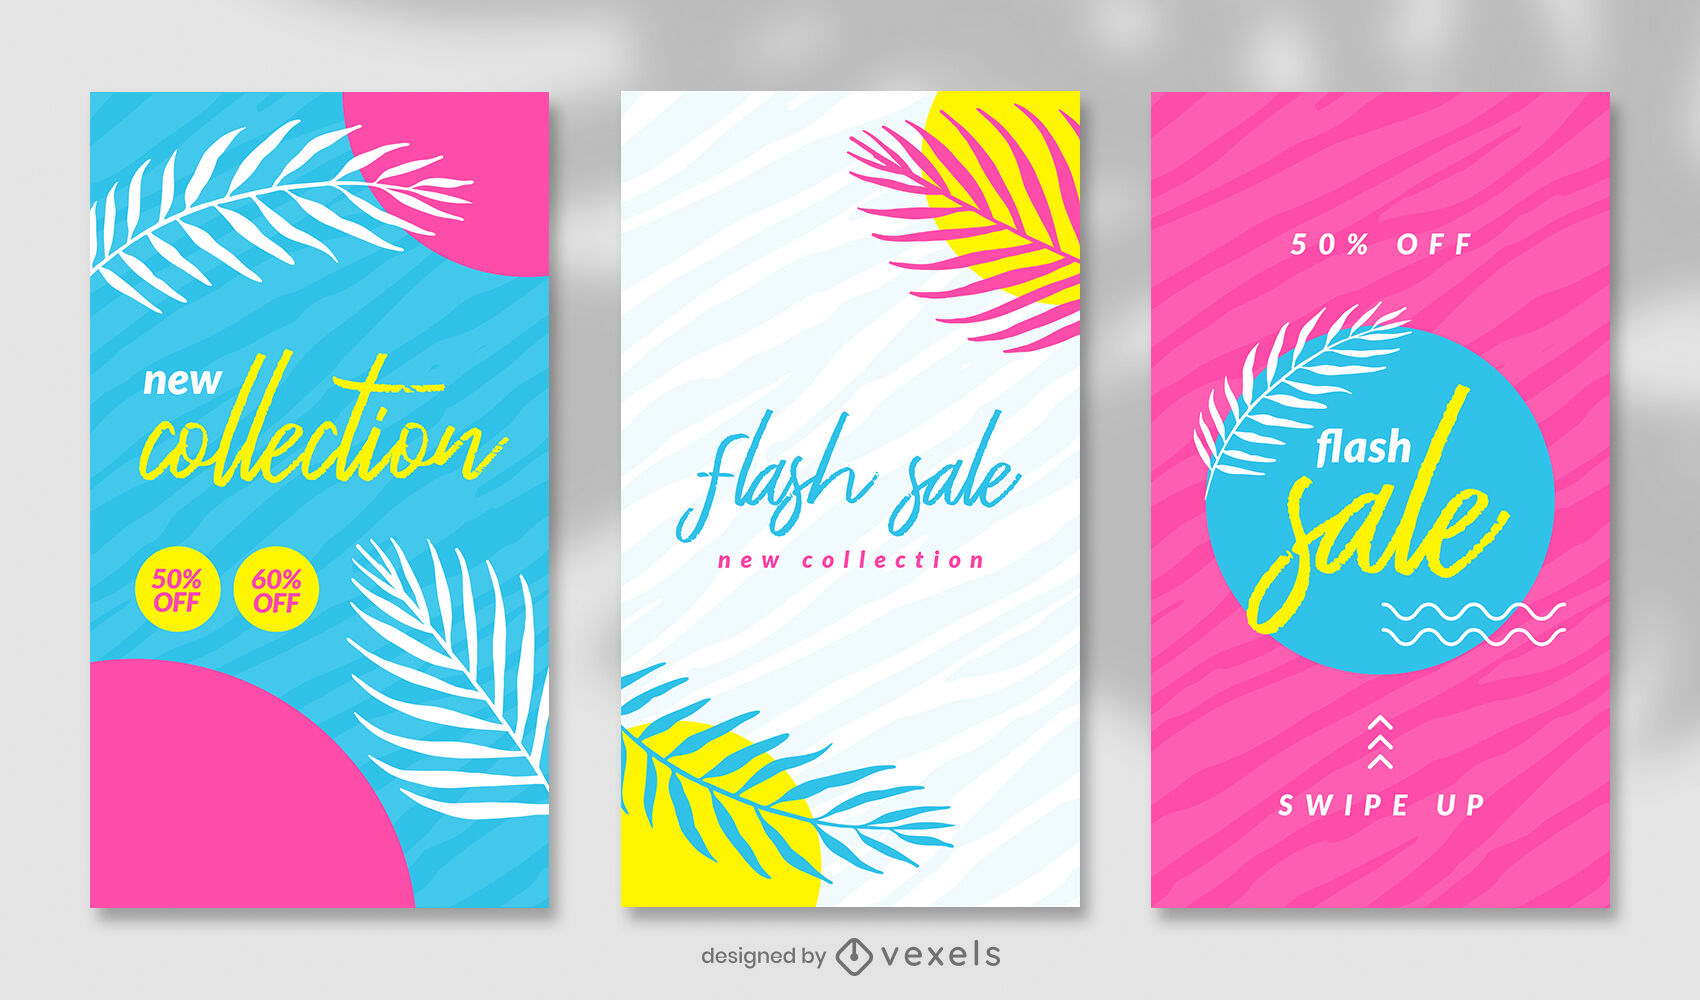 Organic abstract instagram story template